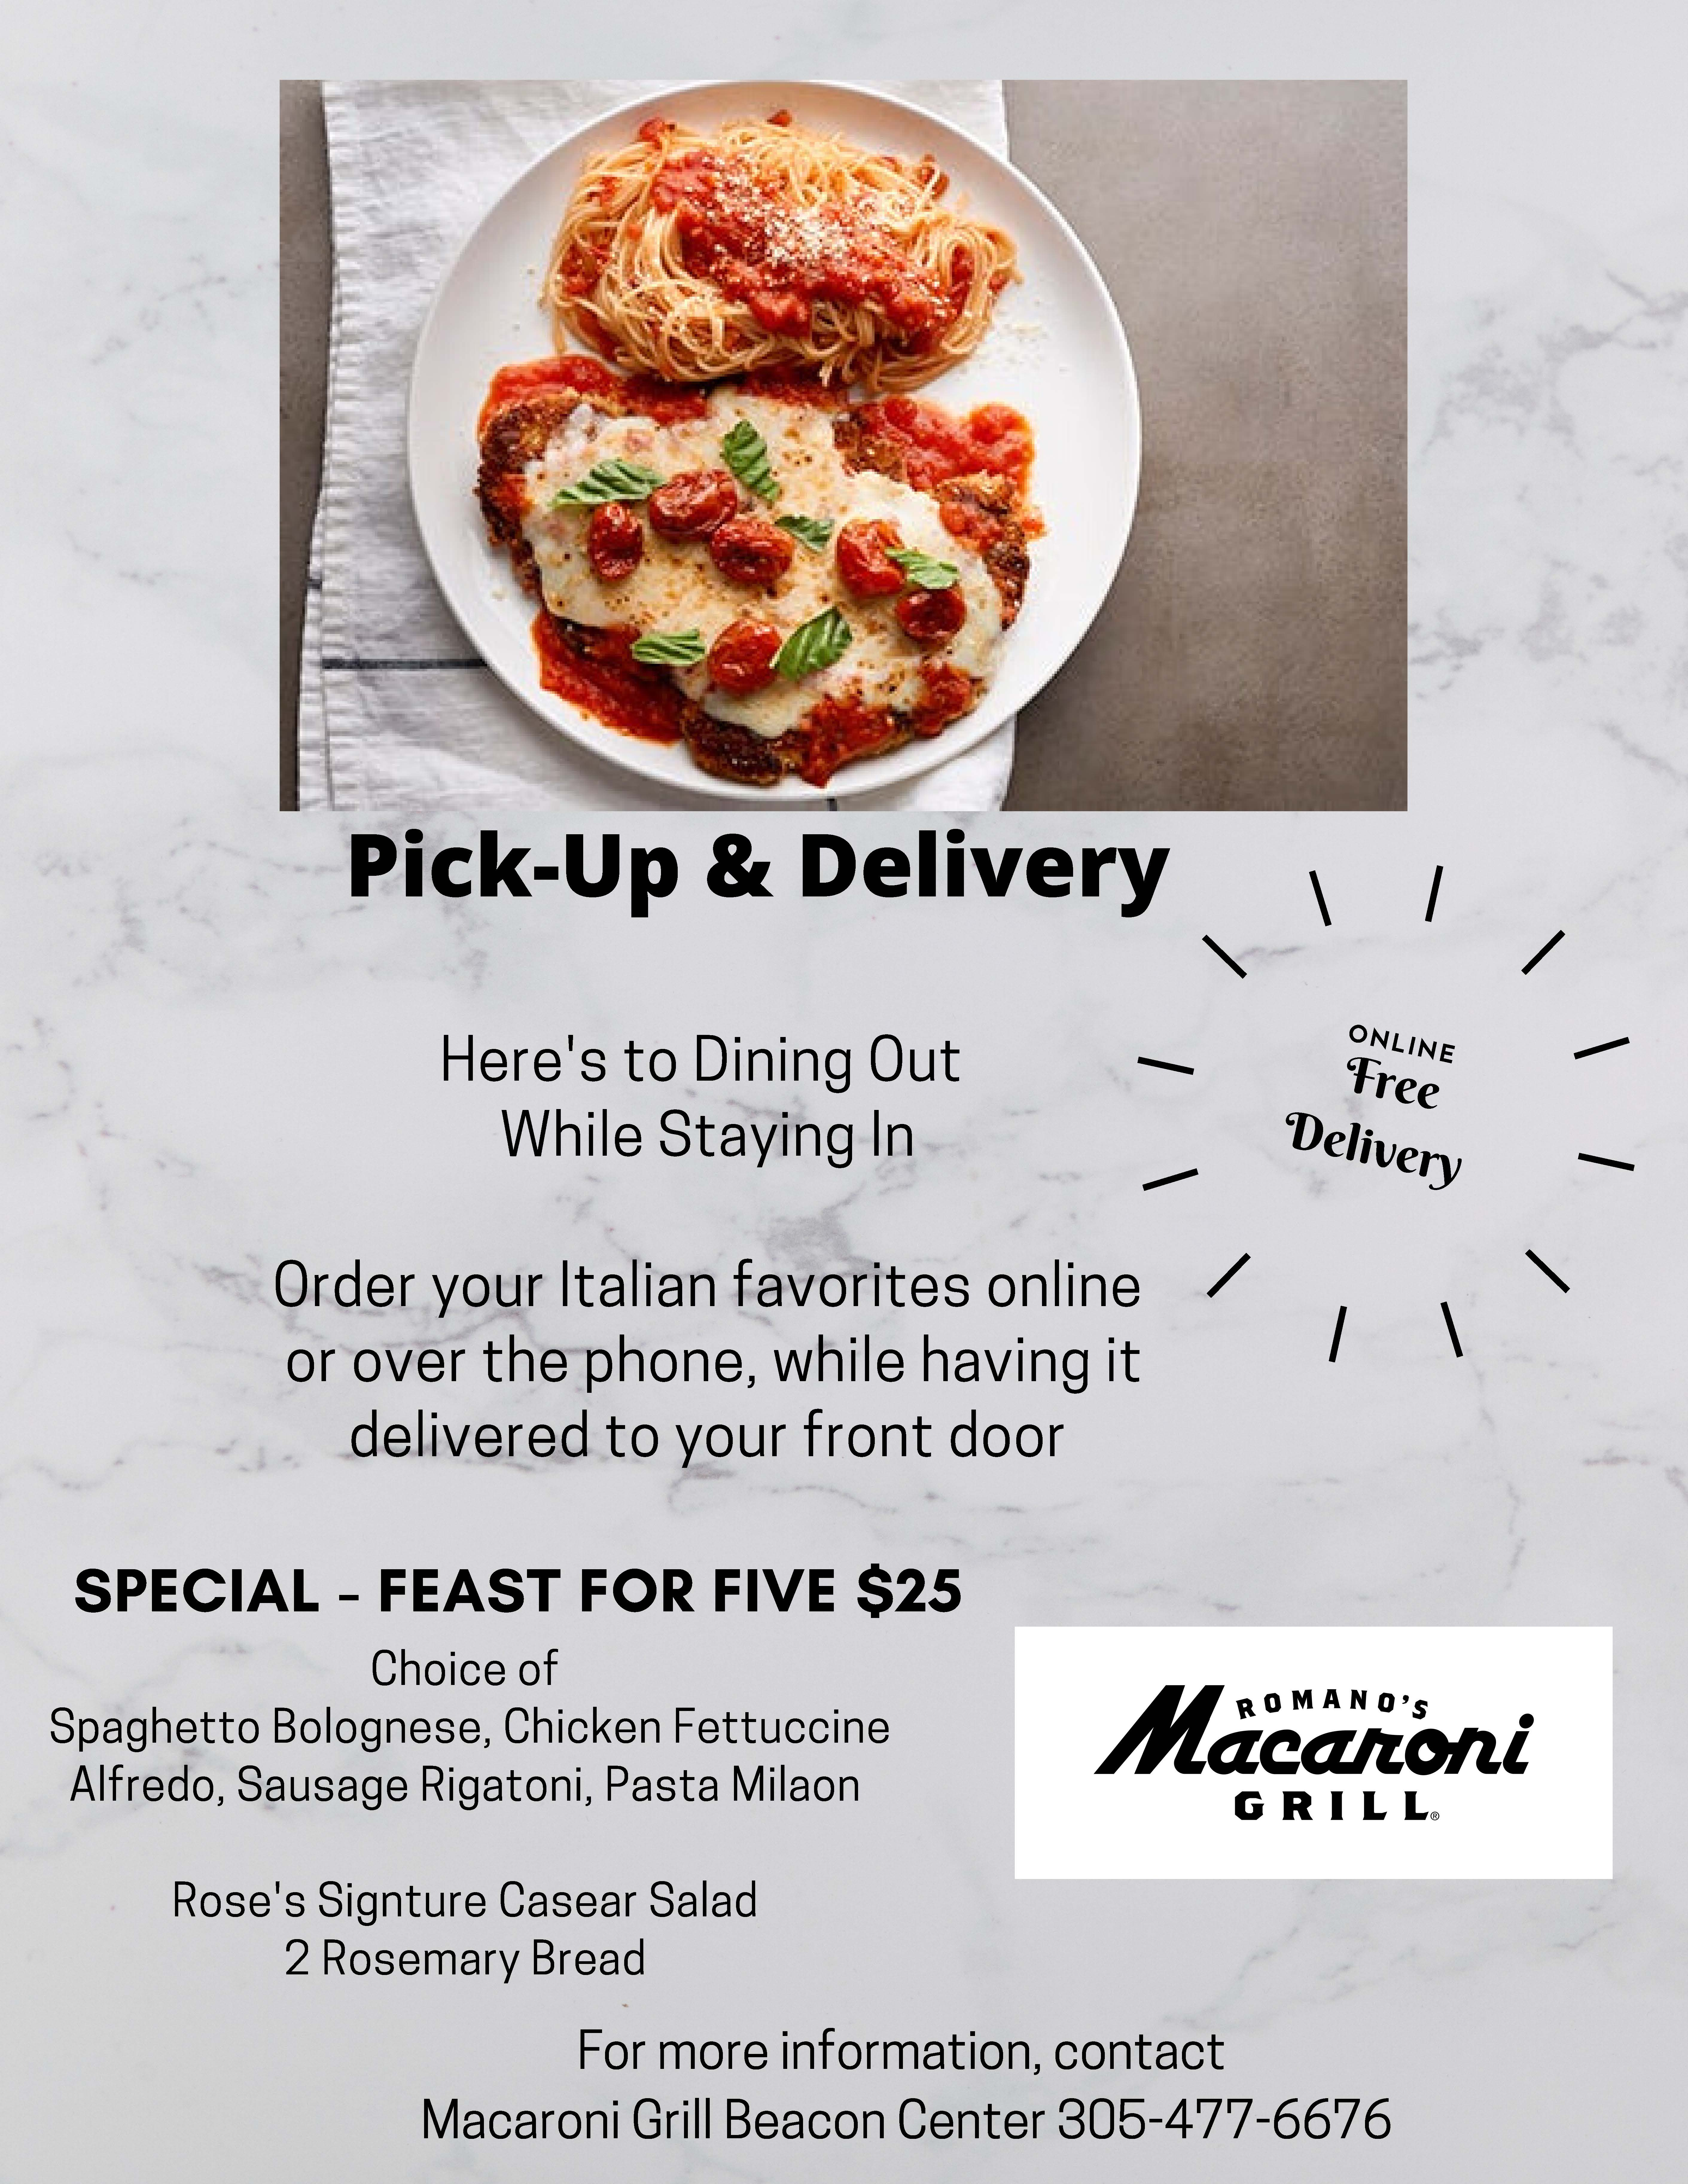 Macaroni Grill Doral Pick Up and Delivery Taste of Doral